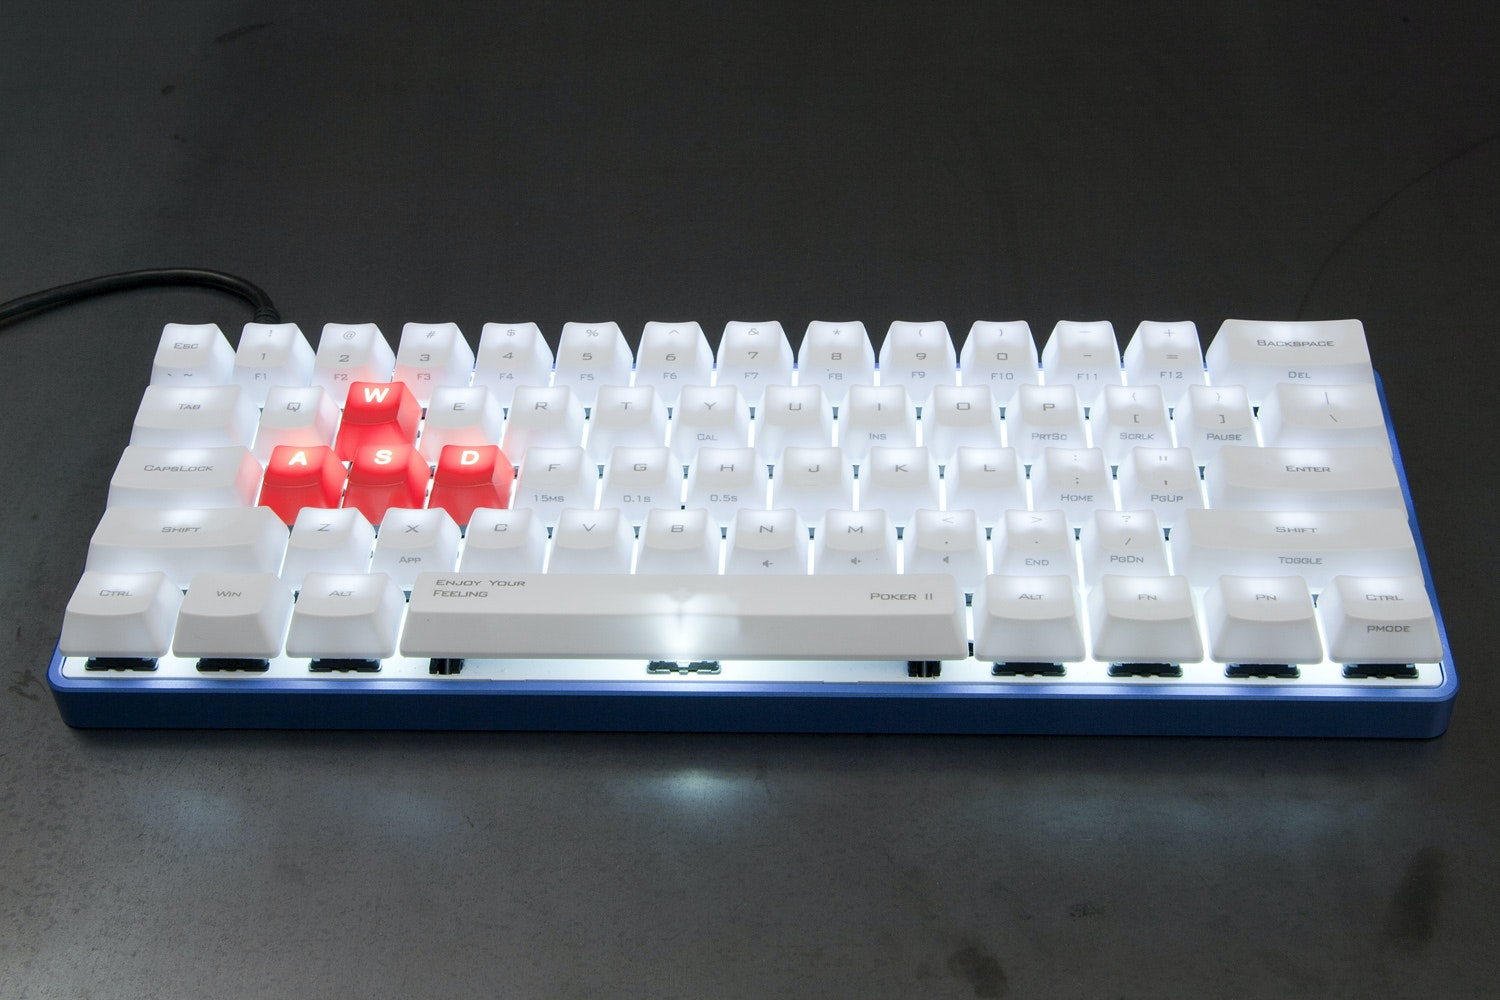 TEX Aluminum CNC 60% Keyboard Case